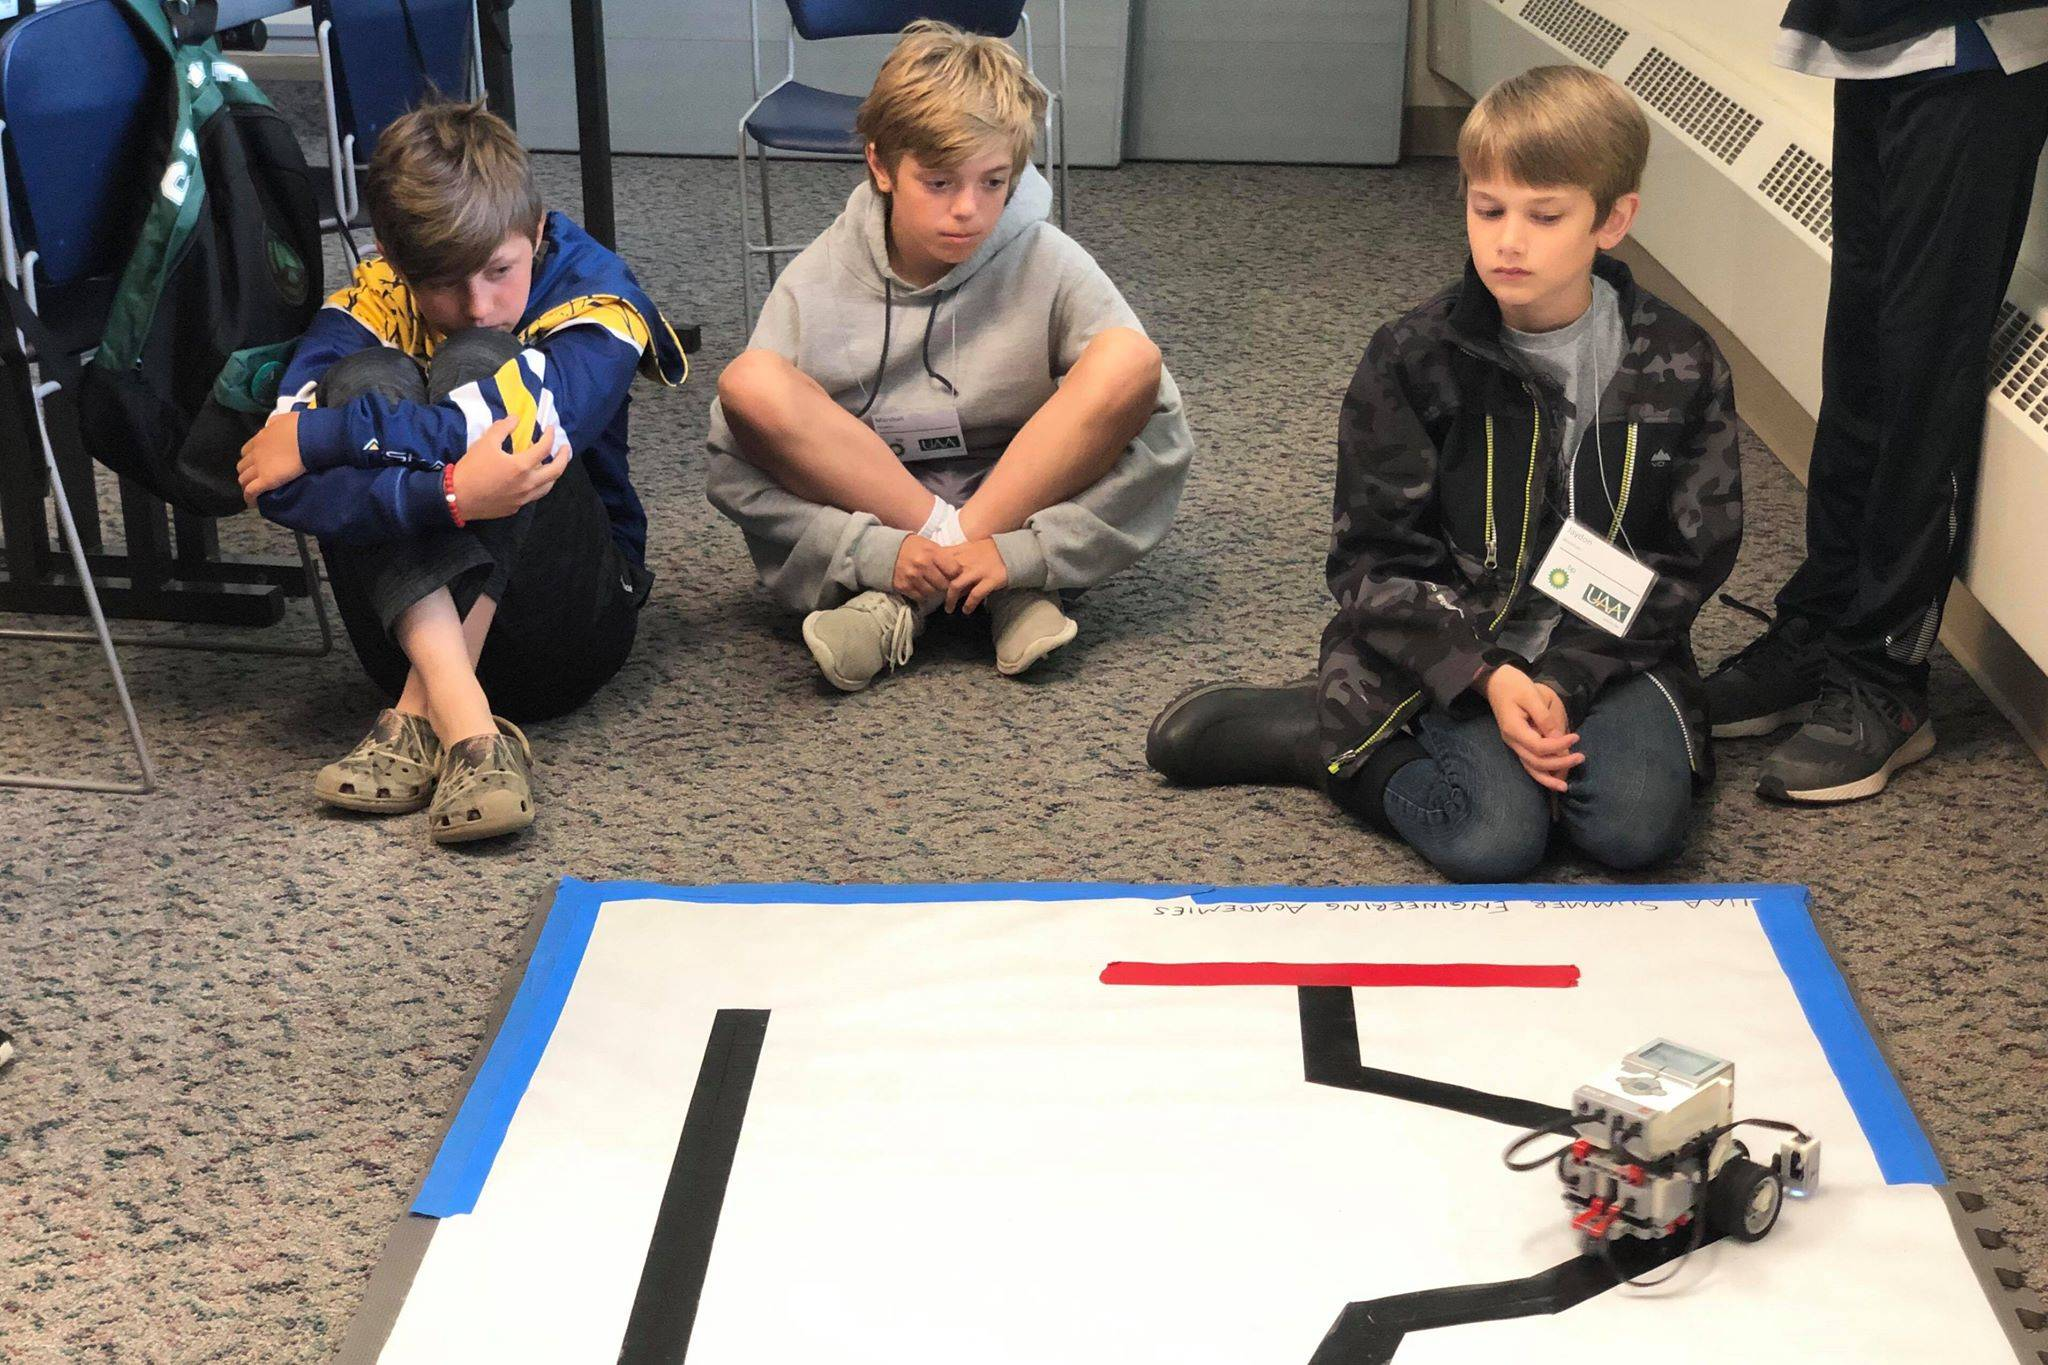 Students put their robot to the test in one of the many challenges in the Lego robotics UAA College of Engineering Summer Engineering Academies, on Wednesday, June 26, 2019, at the Kenai Peninsula College near Soldotna, Alaska. (Photo by Victoria Petersen/Peninsula Clarion)